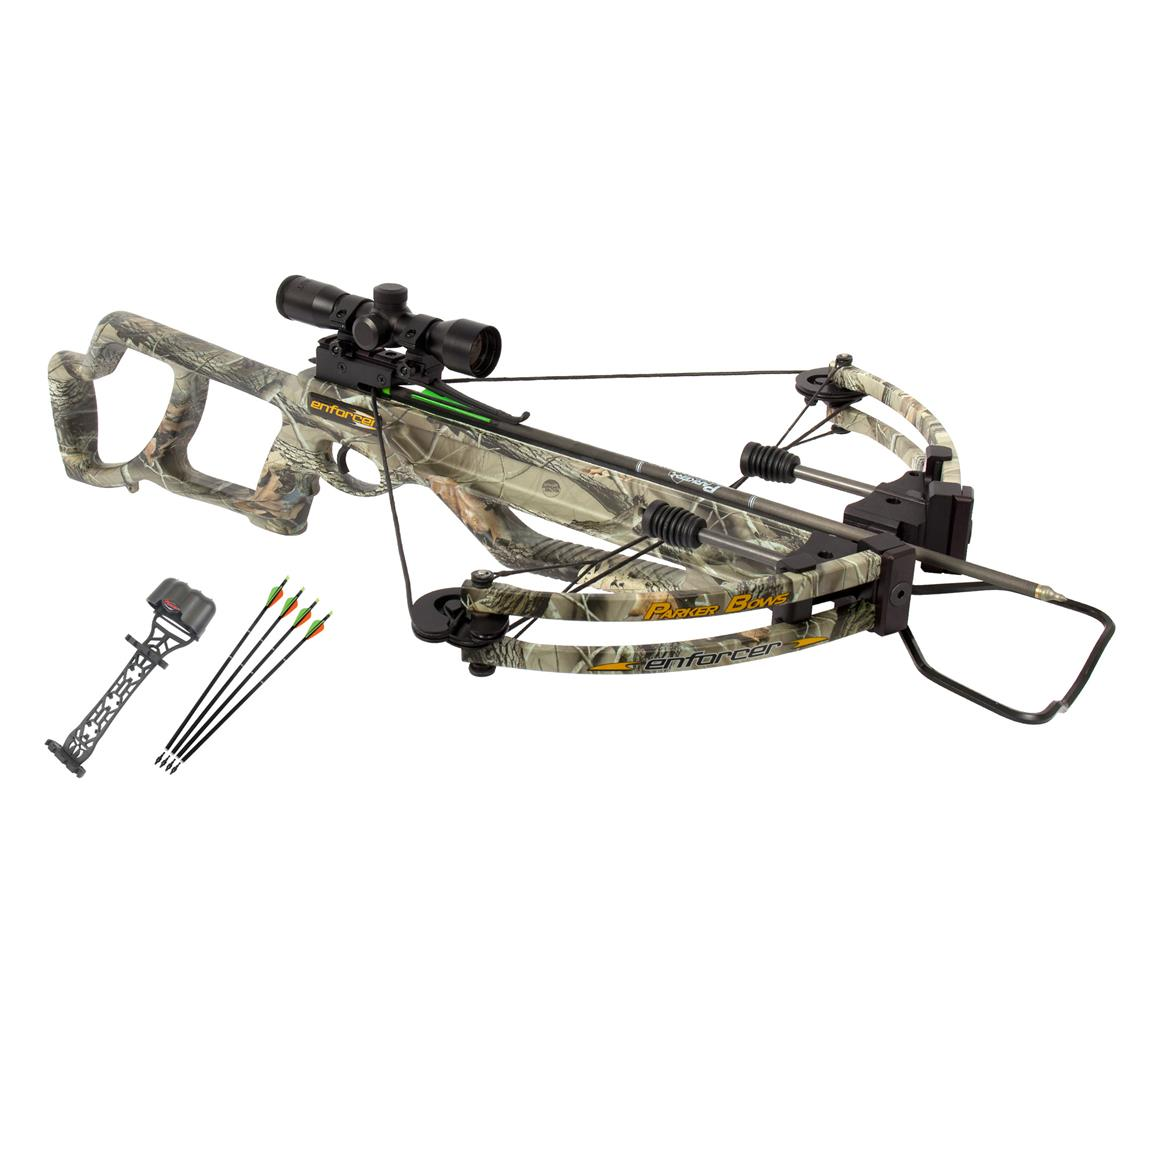 Parker Bows Enforcer Crossbow Package with 3X Illuminated Multi-reticle Scope